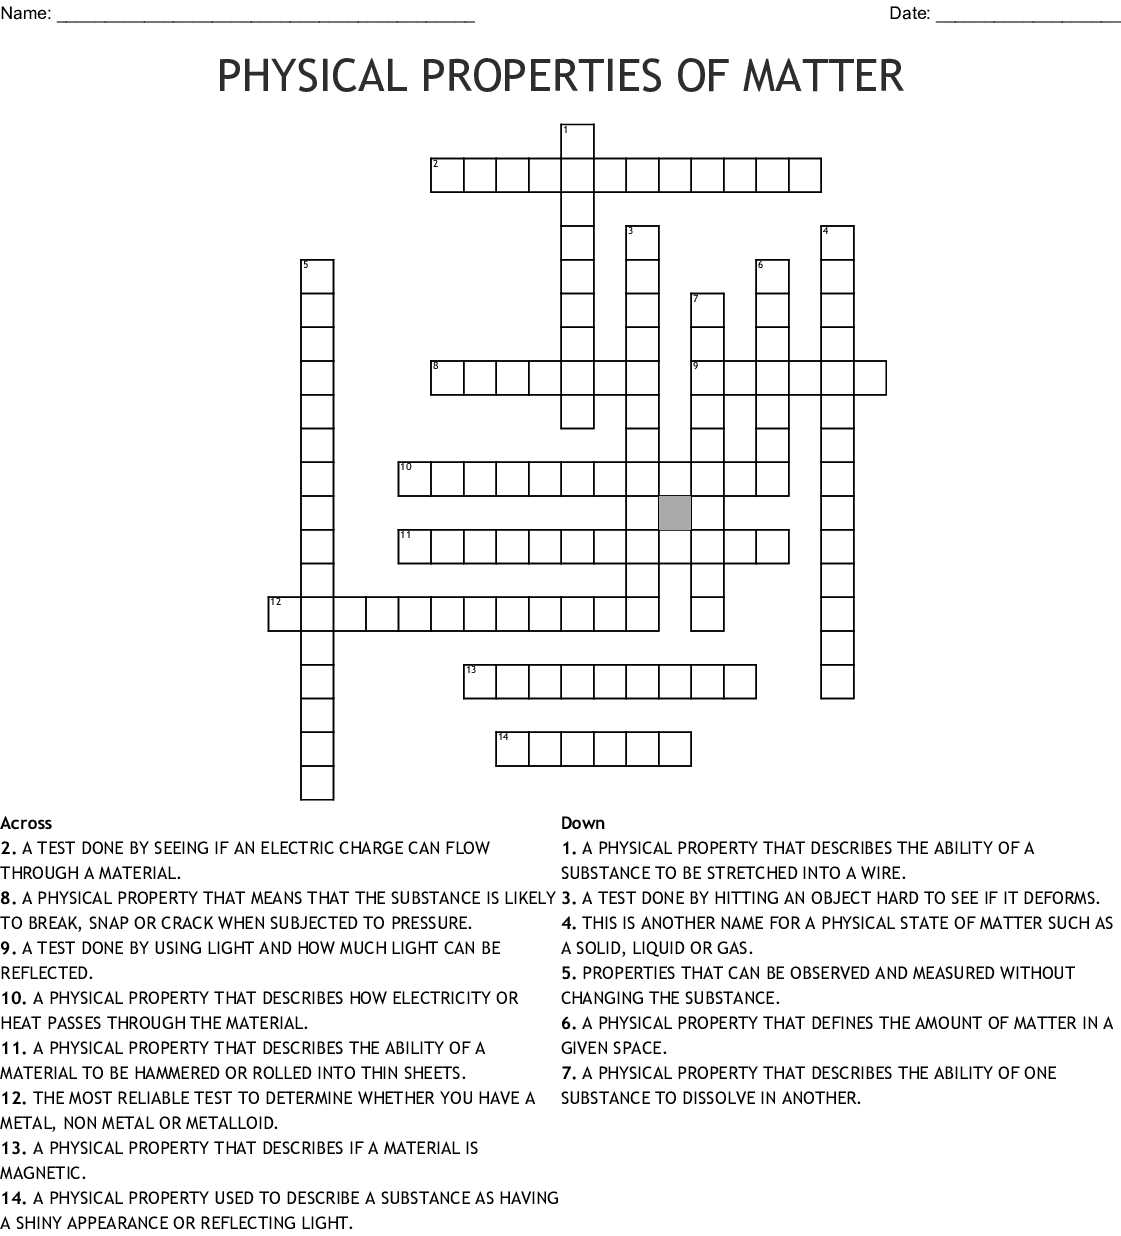 Physical Properties Of Matter Crossword